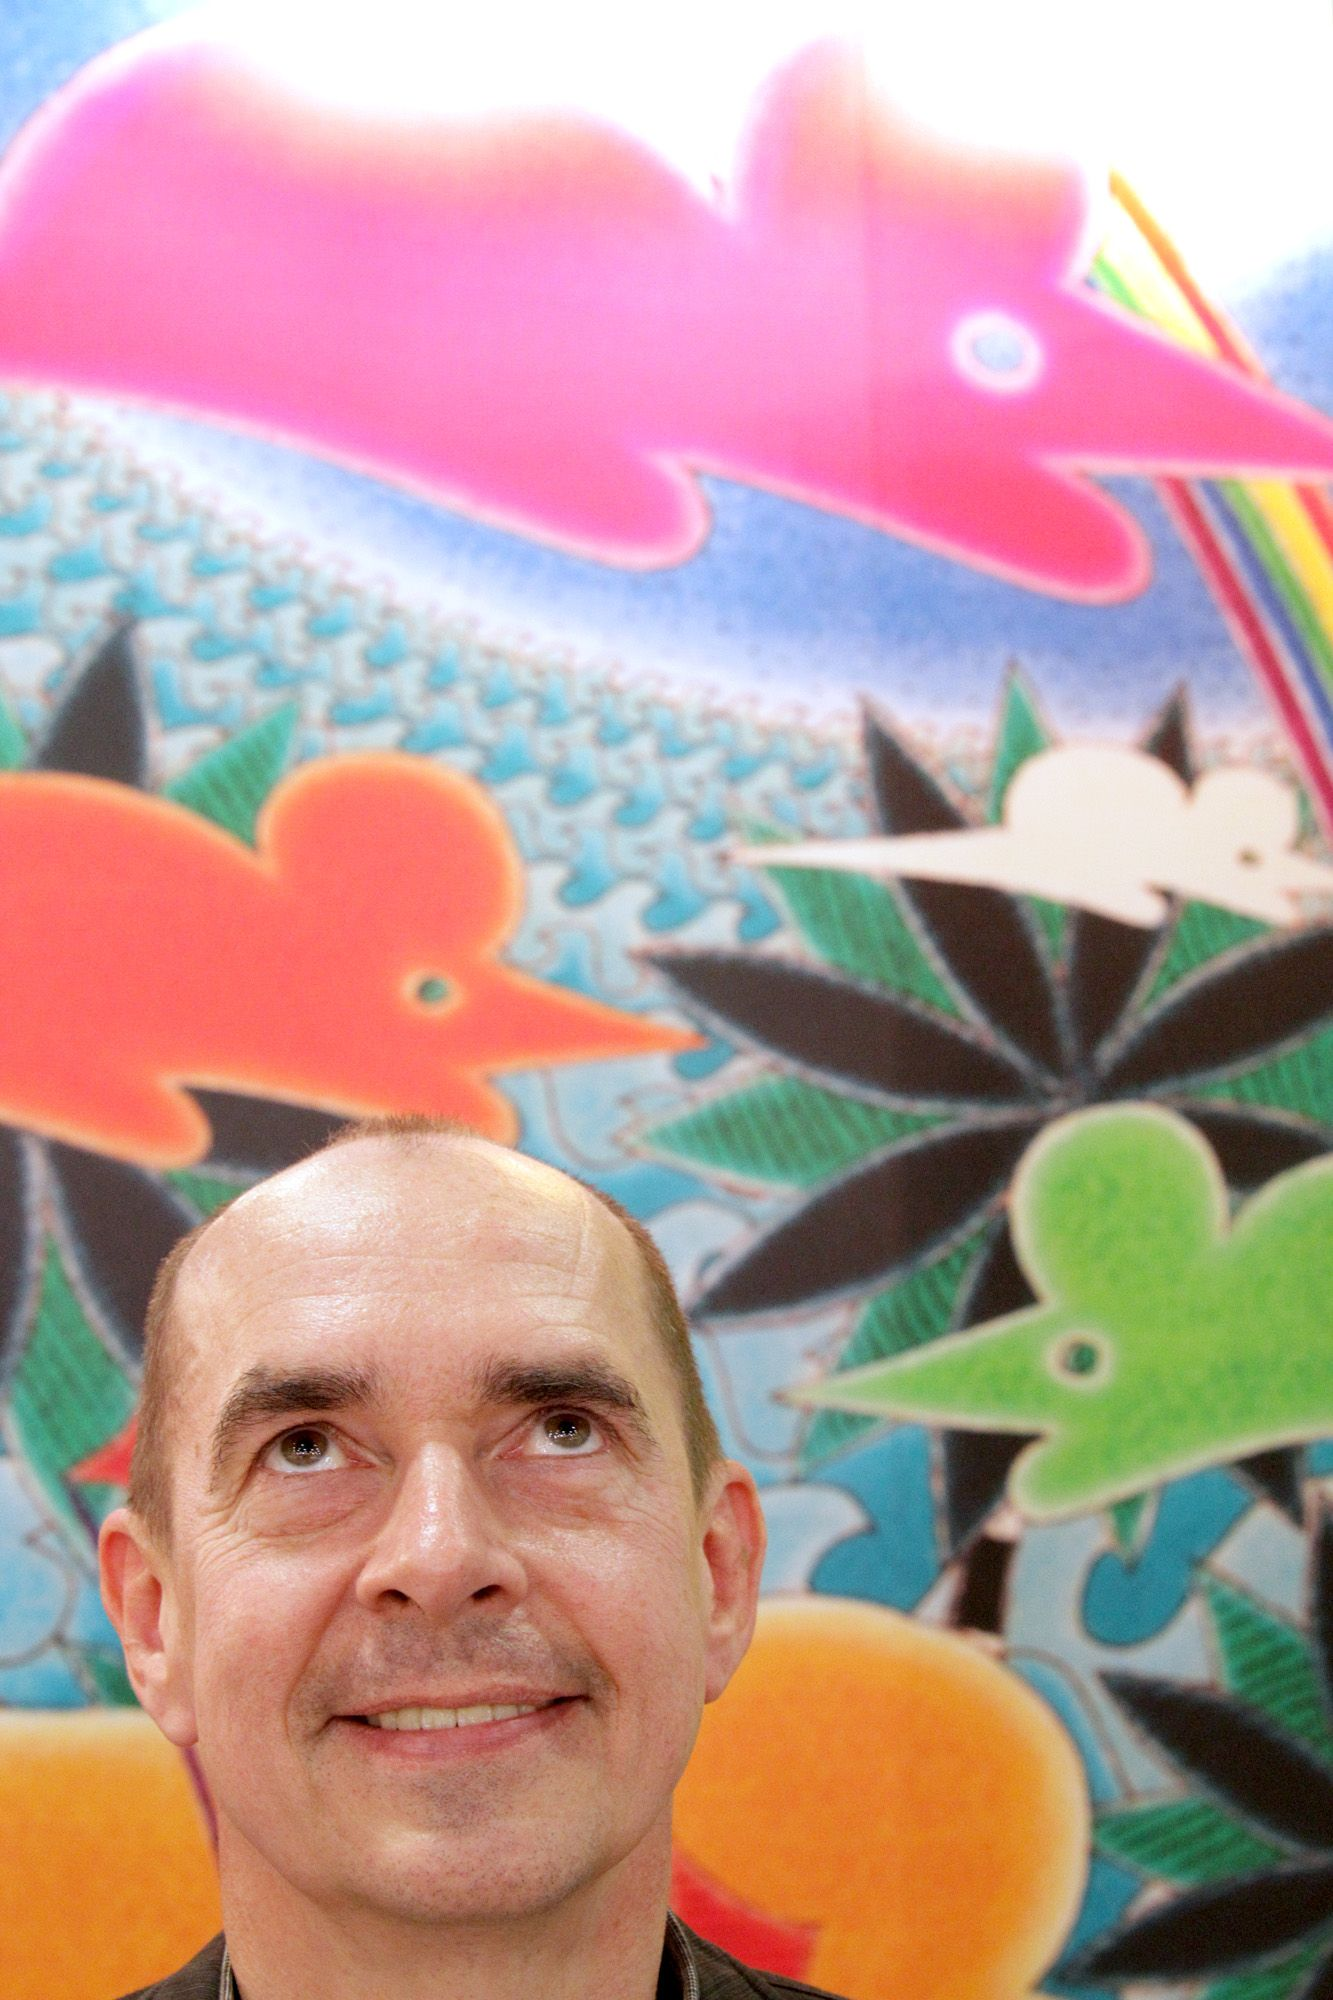 Artist Wolfgang Nocke looks up to a flying mouse painting from his new book 陟abelspiel' yesterday at the Taipei International Book Exhibition 2010.